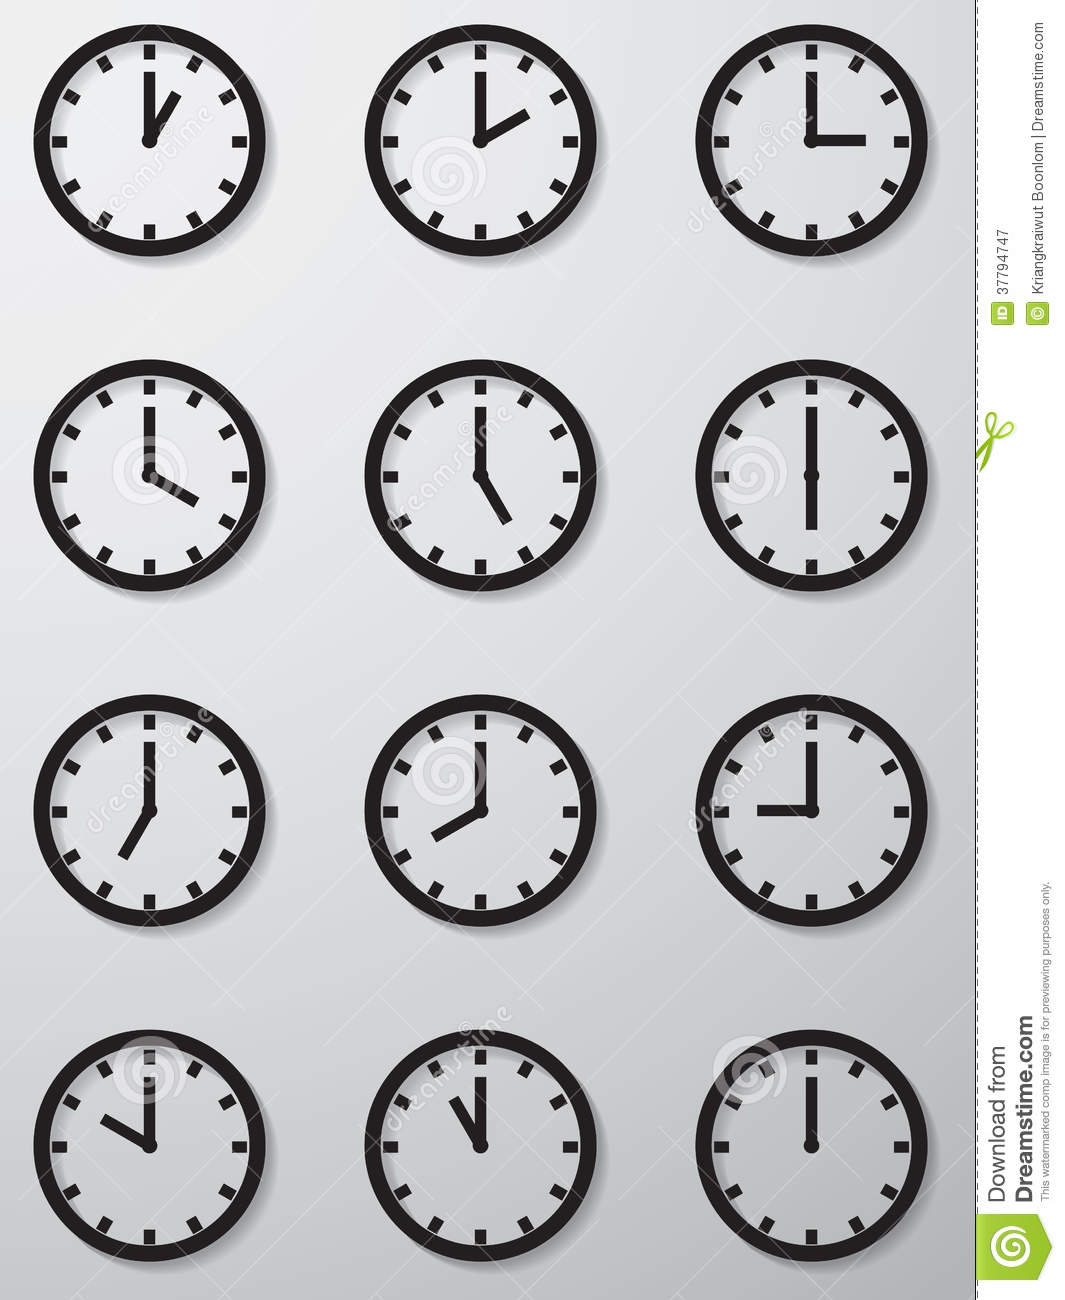 Collection Of 12 Hours Clock Face Icon. Royalty Free Stock Photography ...